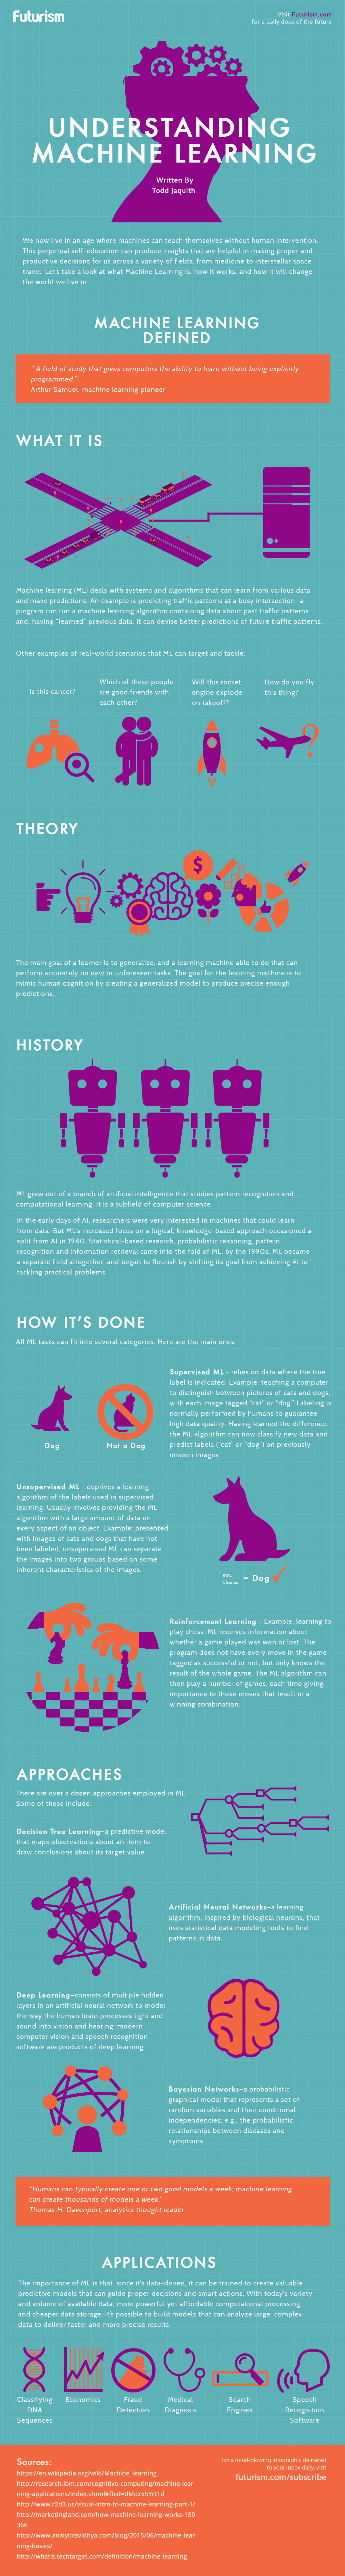 Pin by Futurism on Infographics   Ai machine learning, Machine learning artificial intelligence ...